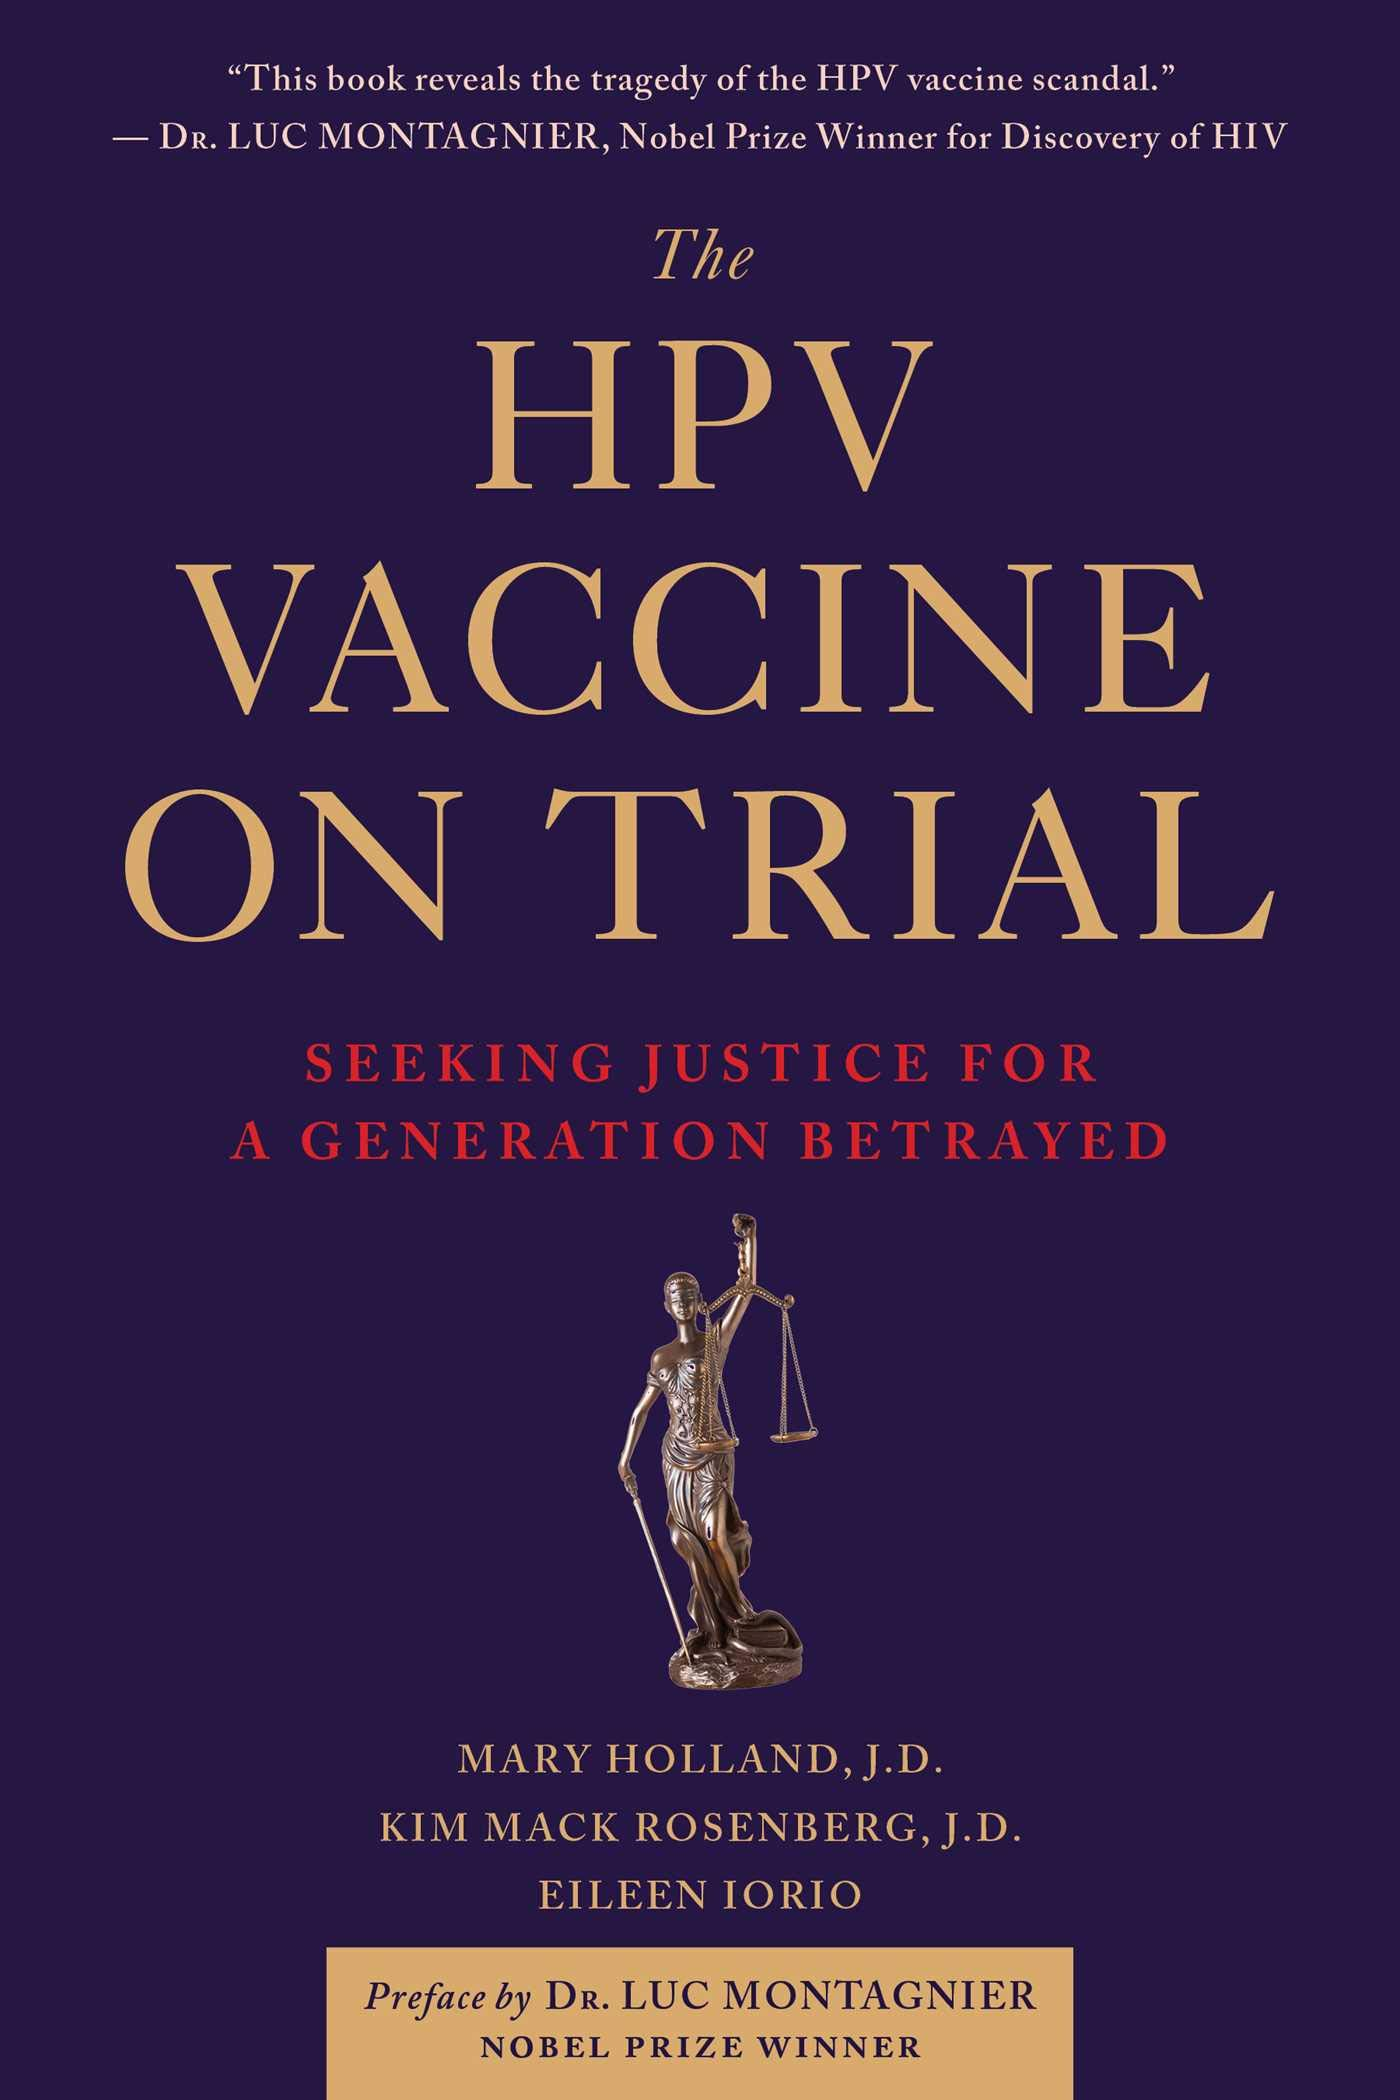 Hpv-pill-medicines-next-big-thing. Hpv genital warts cause cancer